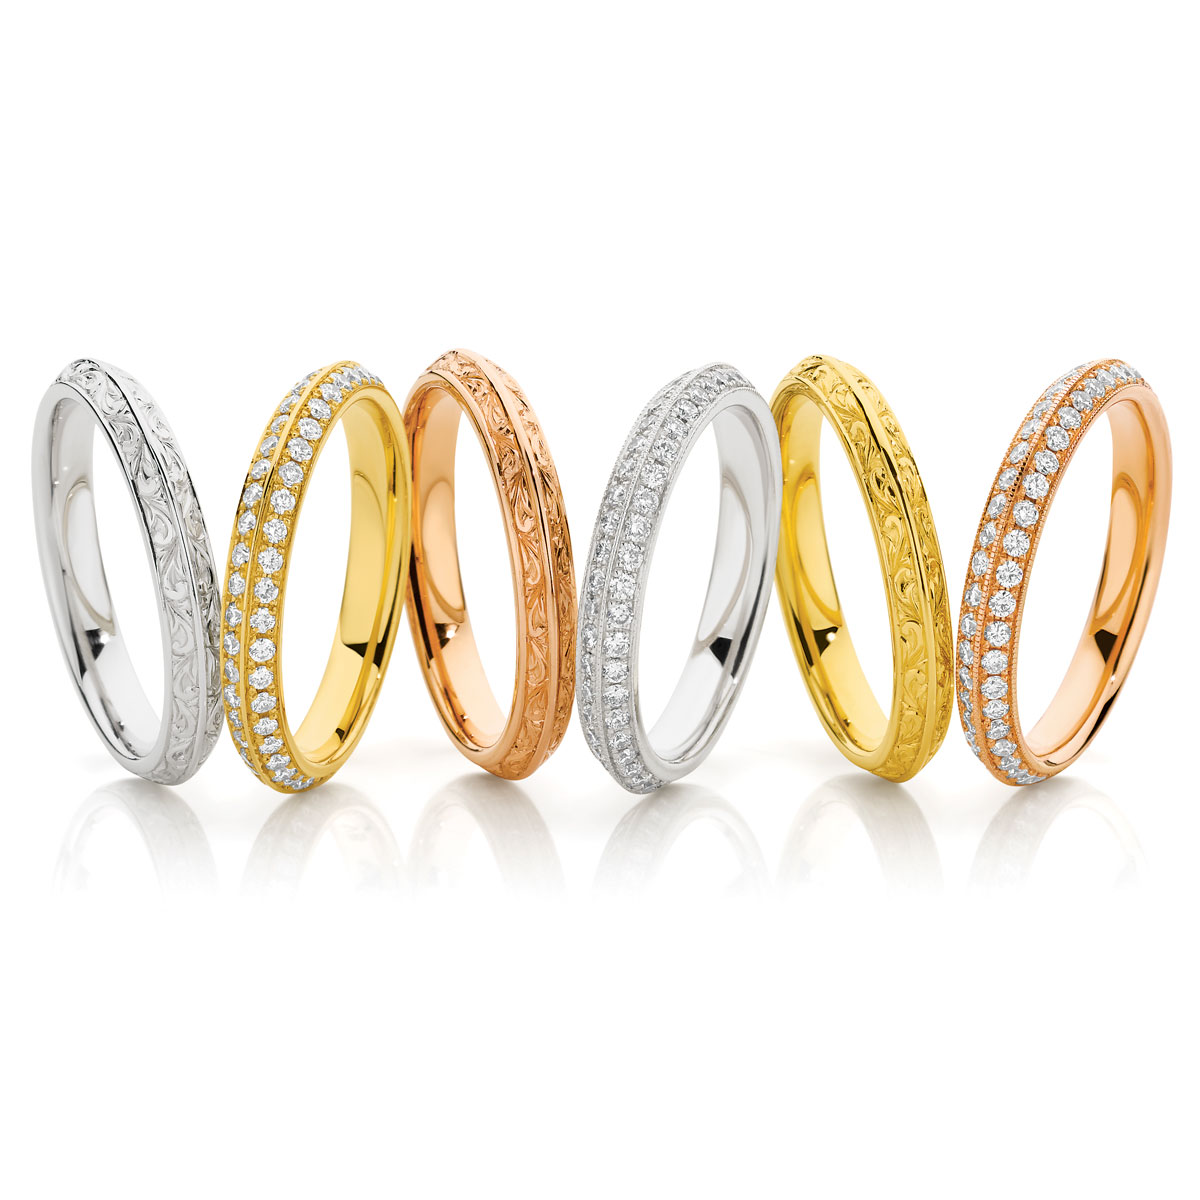 Silk Road Wedding Bands